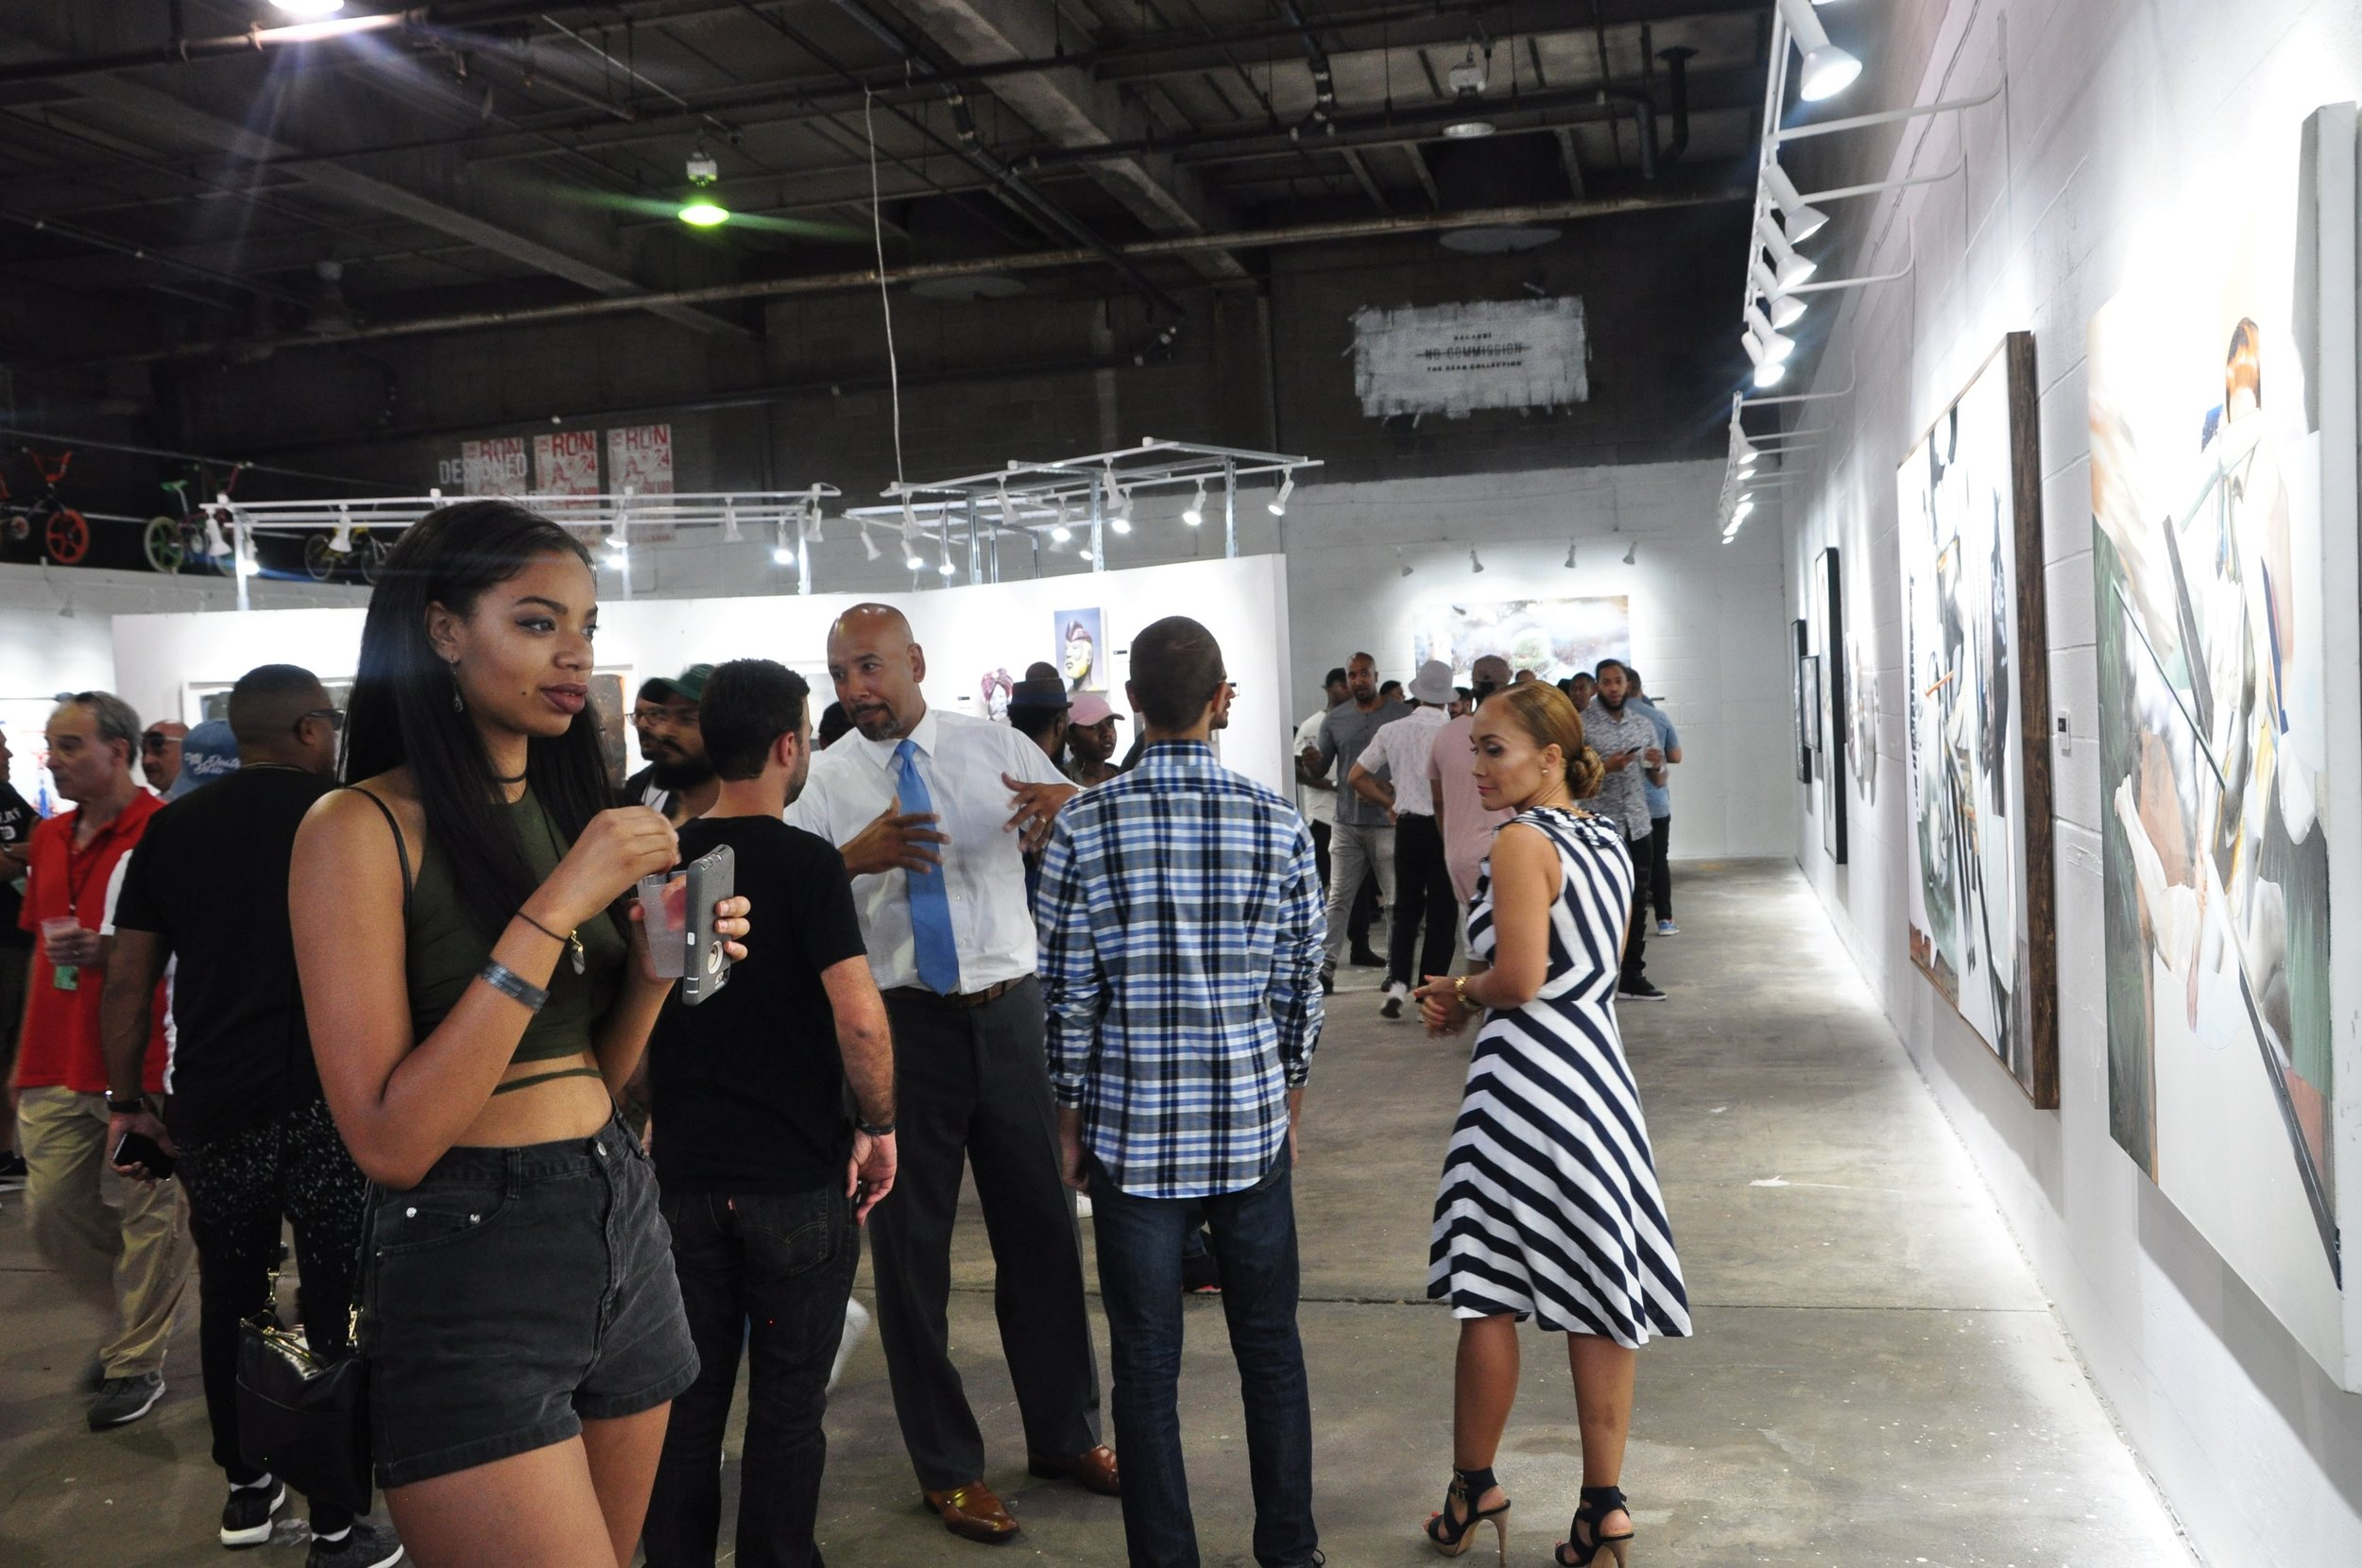 By Samali Bikangaga. Borough President Ruben Diaz Jr. (center, with blue tie) chats with fellow guests at No Commission NY.